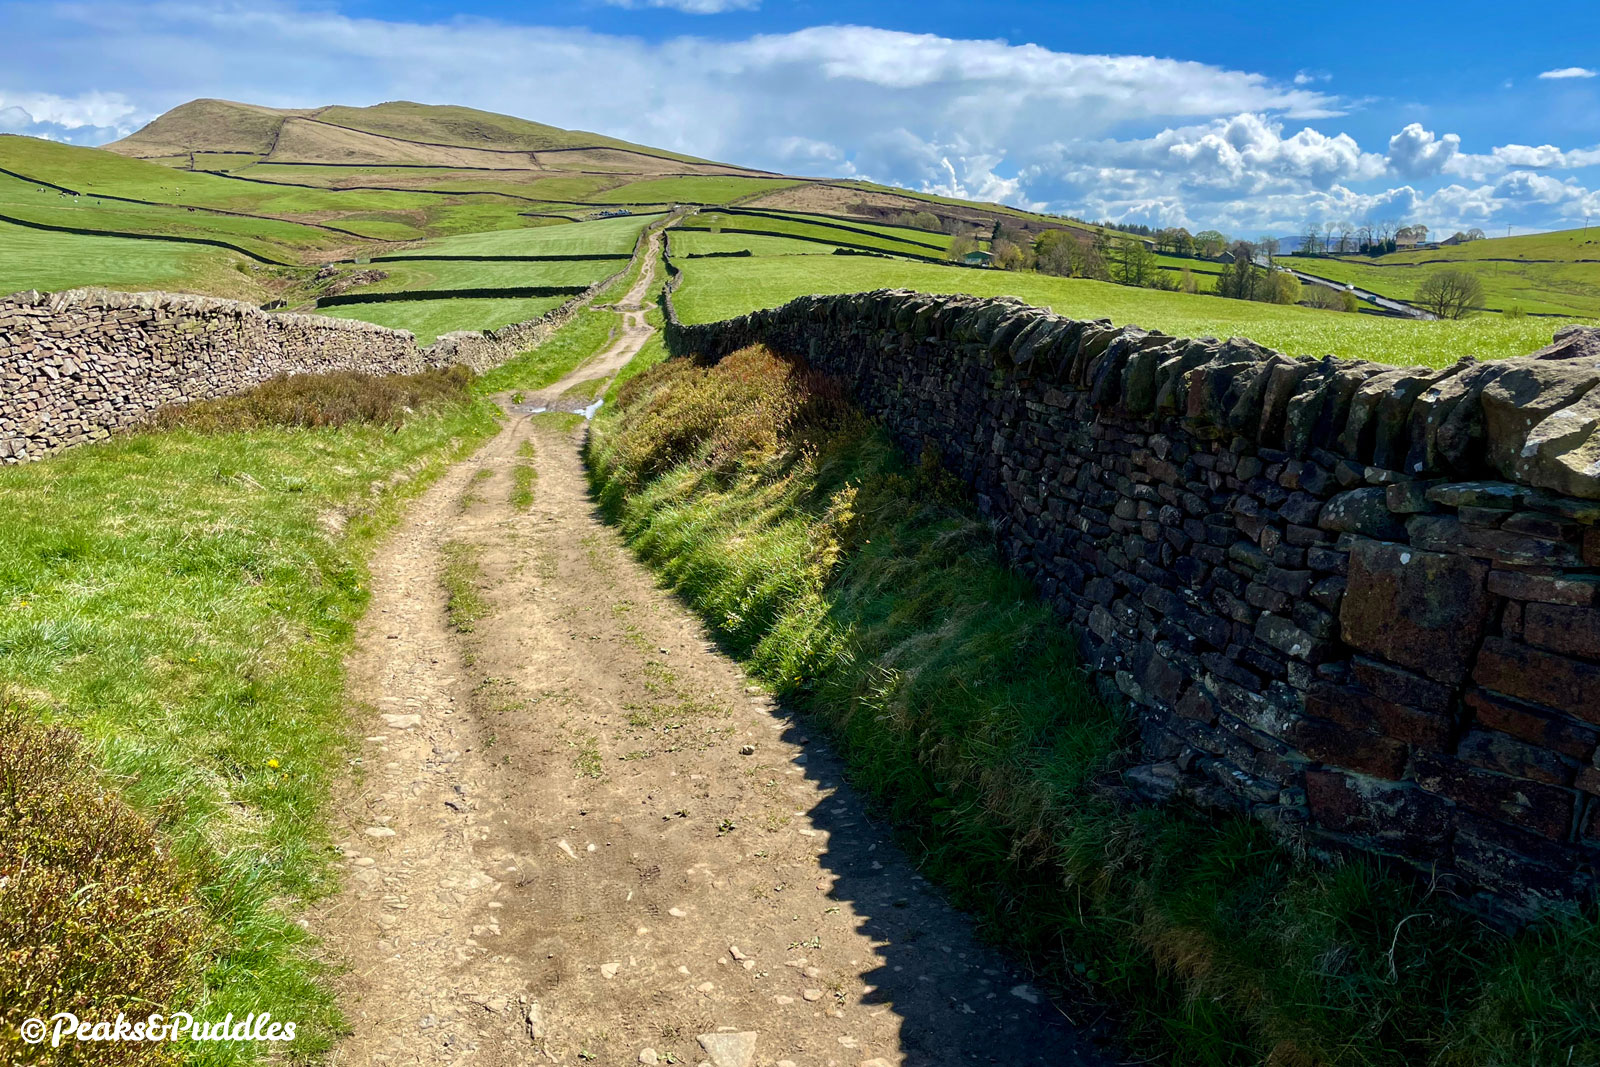 (Bridleway option) As the deserted bridleway stretches away to the foot of Mount Famine, the busier A624 can be seen top right.